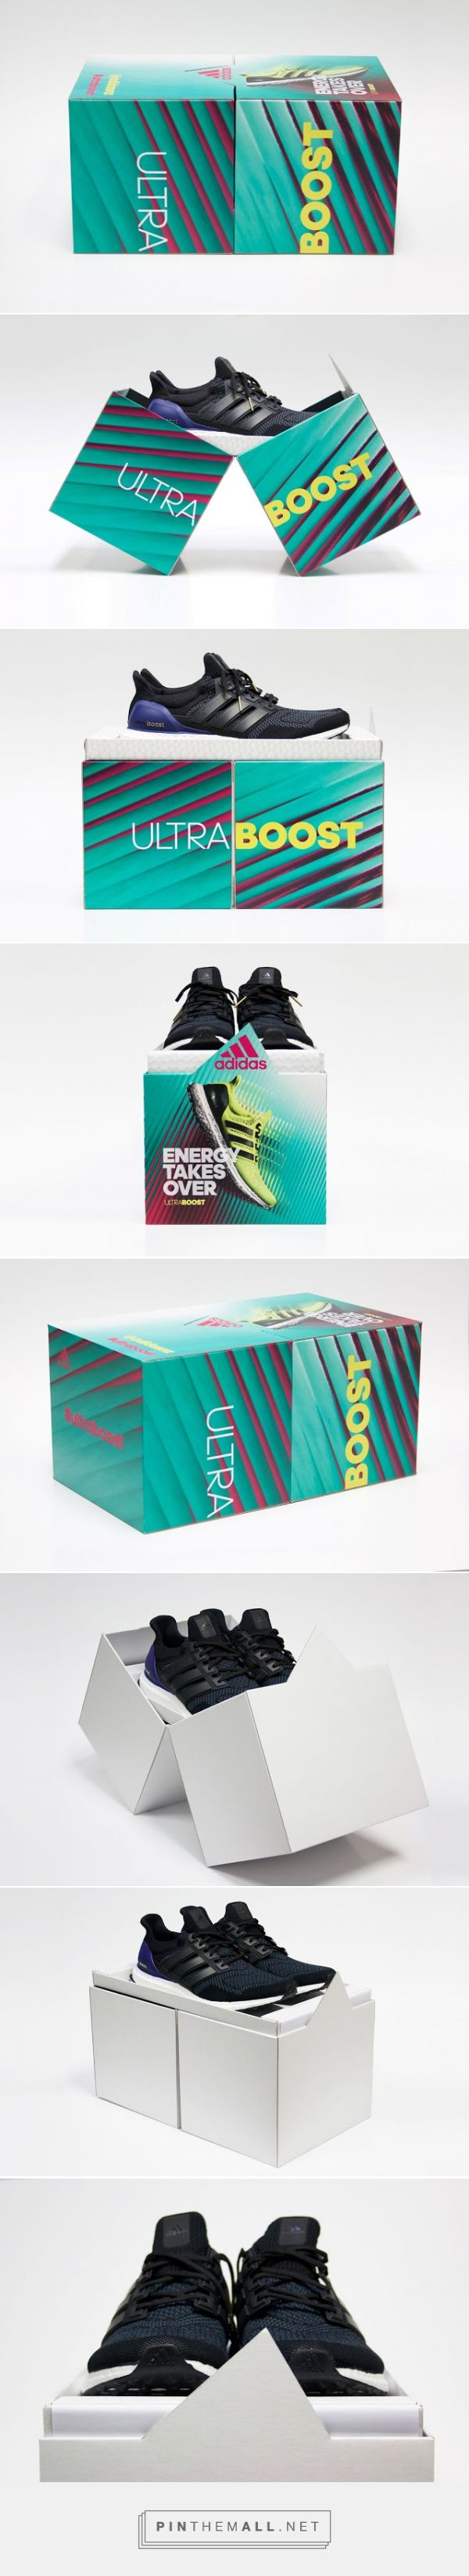 adidas - Ultra Boost soccer boots packaging designed by THINK Packaging - http://www.packagingoftheworld.com/2015/12/adidas-ultra-boost.html